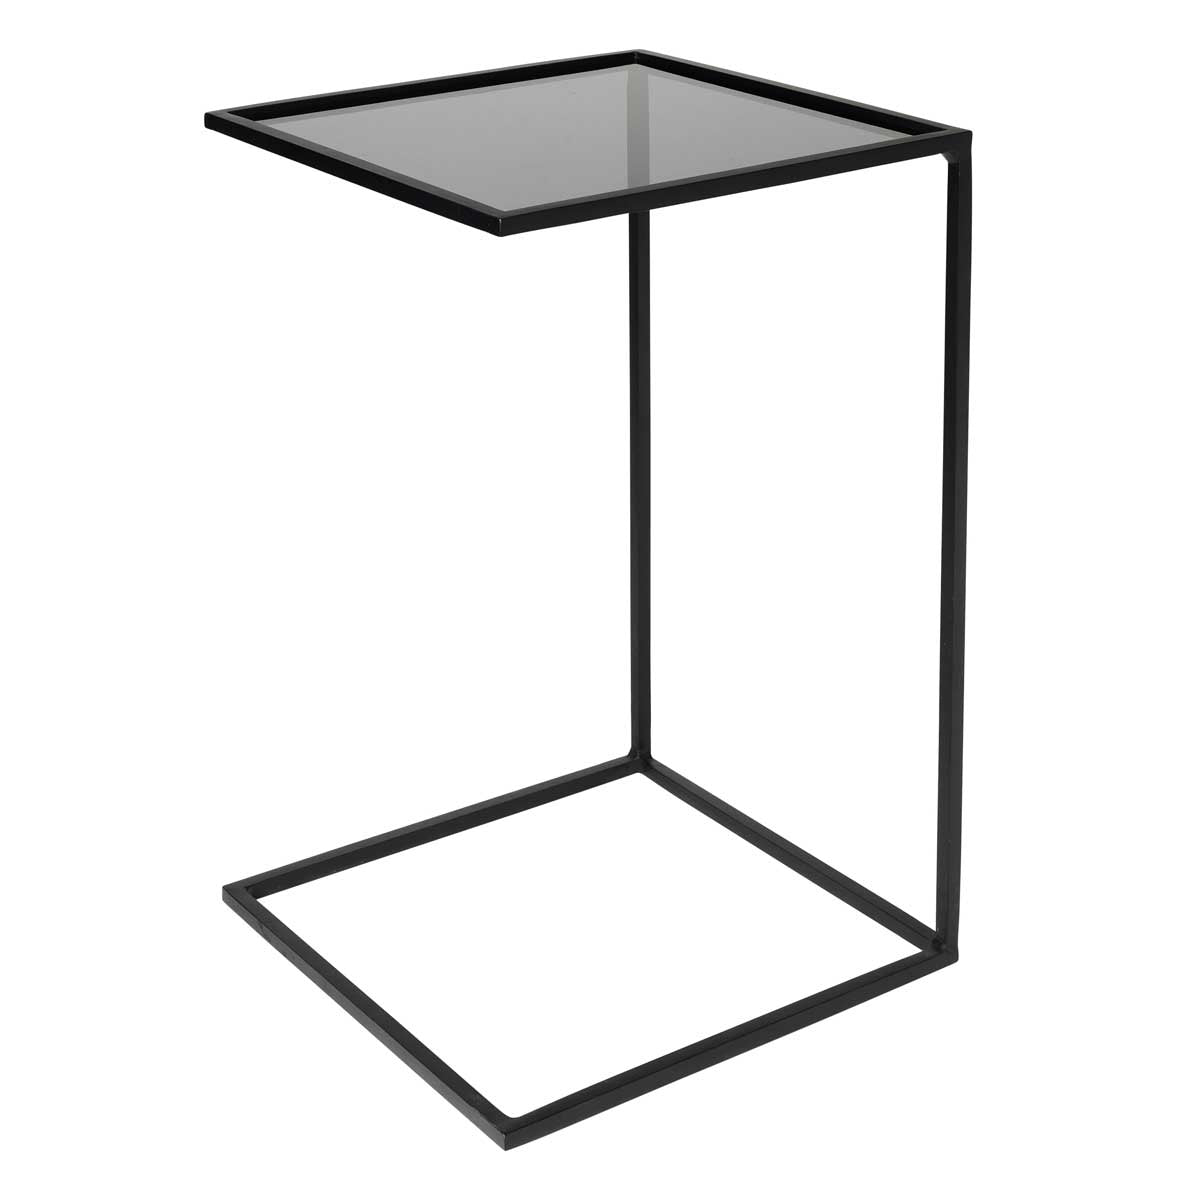 Broste Copenhagen Side Table 'Tania' Glass Steel 2 sizes